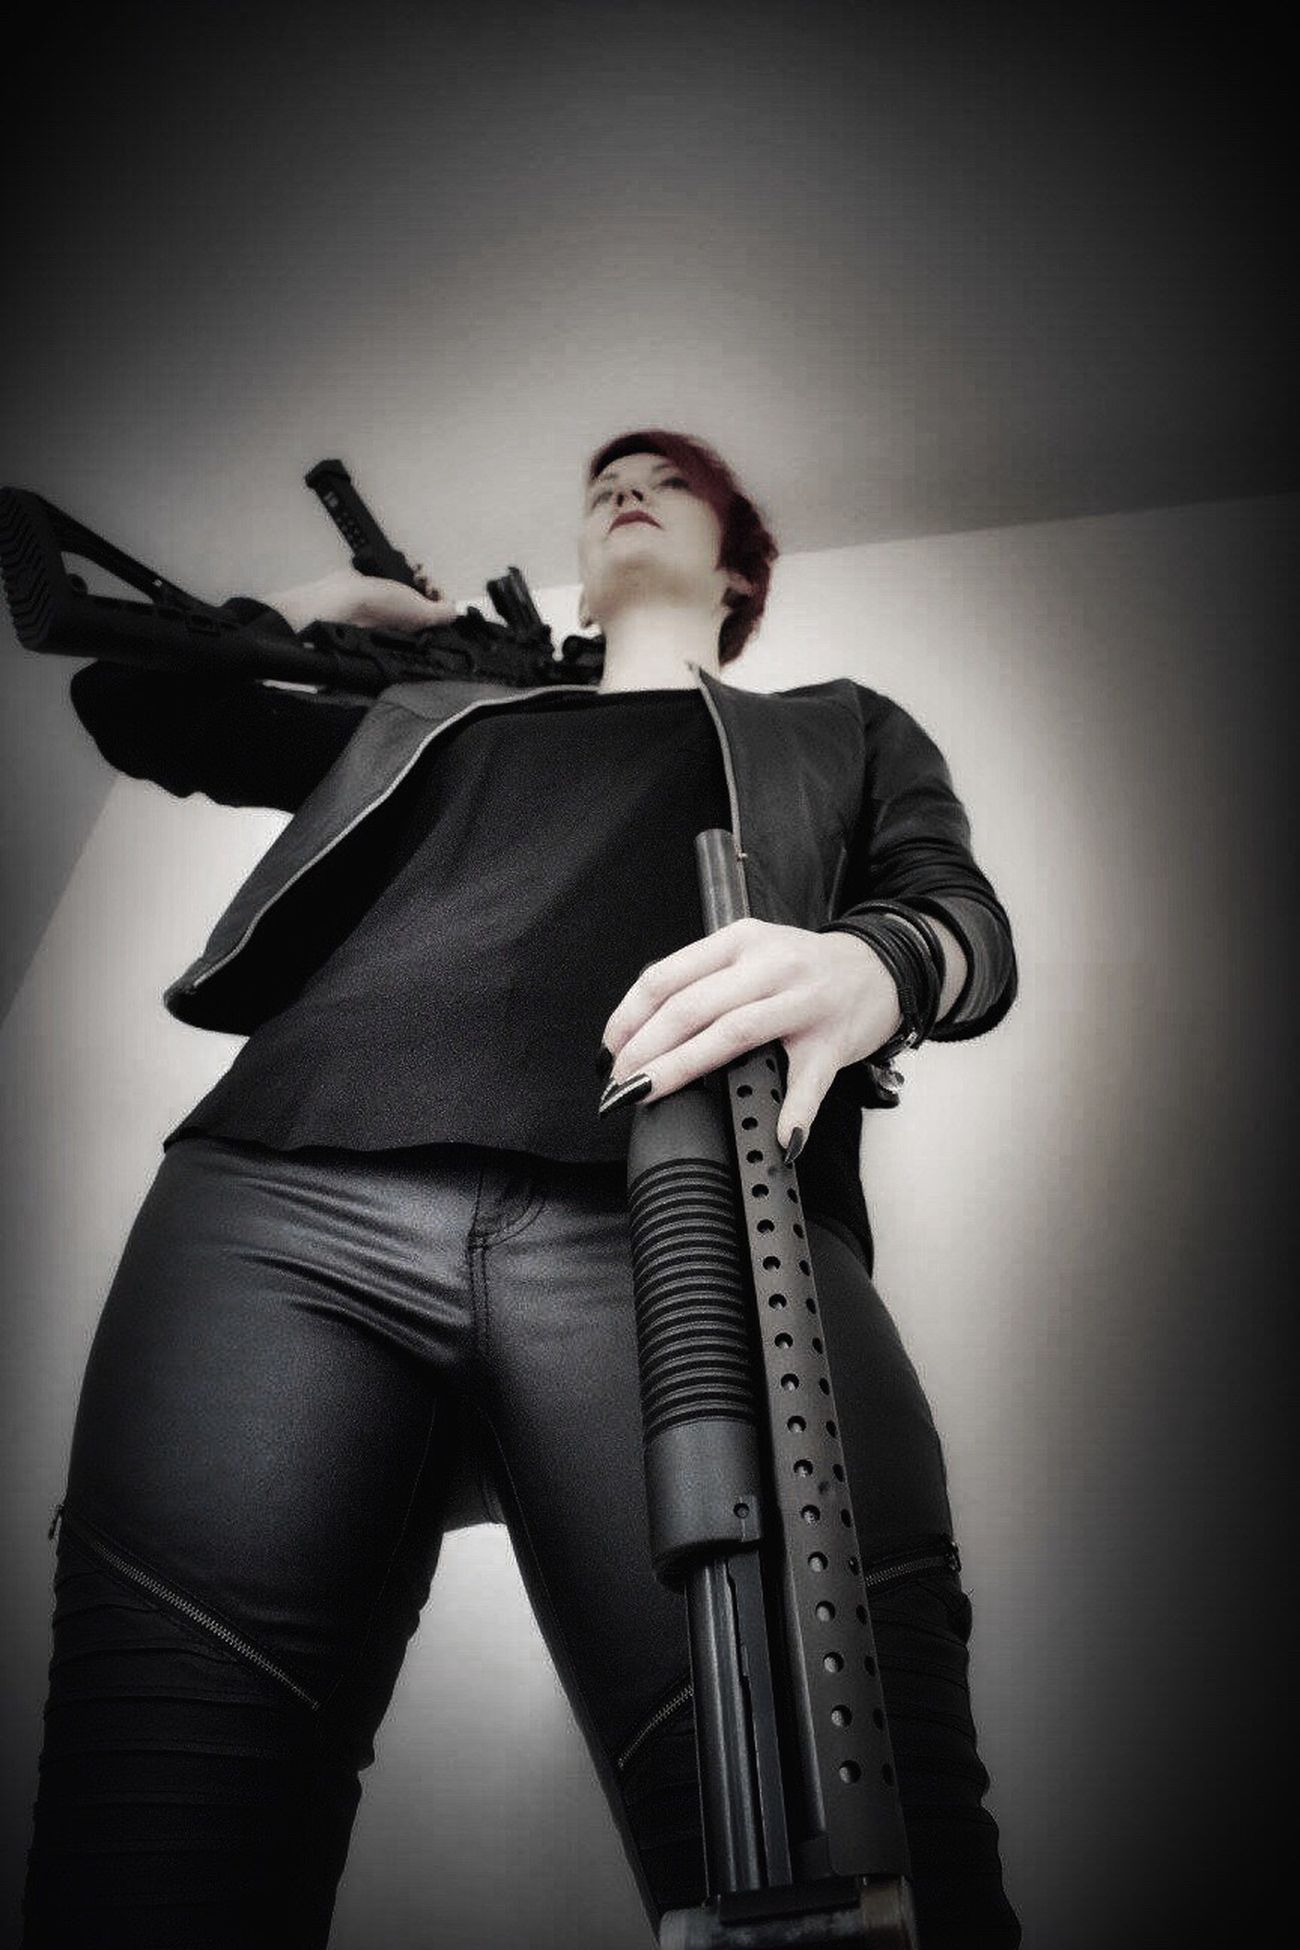 "I am ready for the zombie apocalypse😁😁😁/ Agent 47 series ""femme fatale"" Guns Weapons Dangerous Modeling Model Pose Posing Canonphotography Female Femme Fatale Female Model Woman Inspired By Movies Eye4photography  Posing For The Camera Tadaa Community Gun Weapon Assignments"